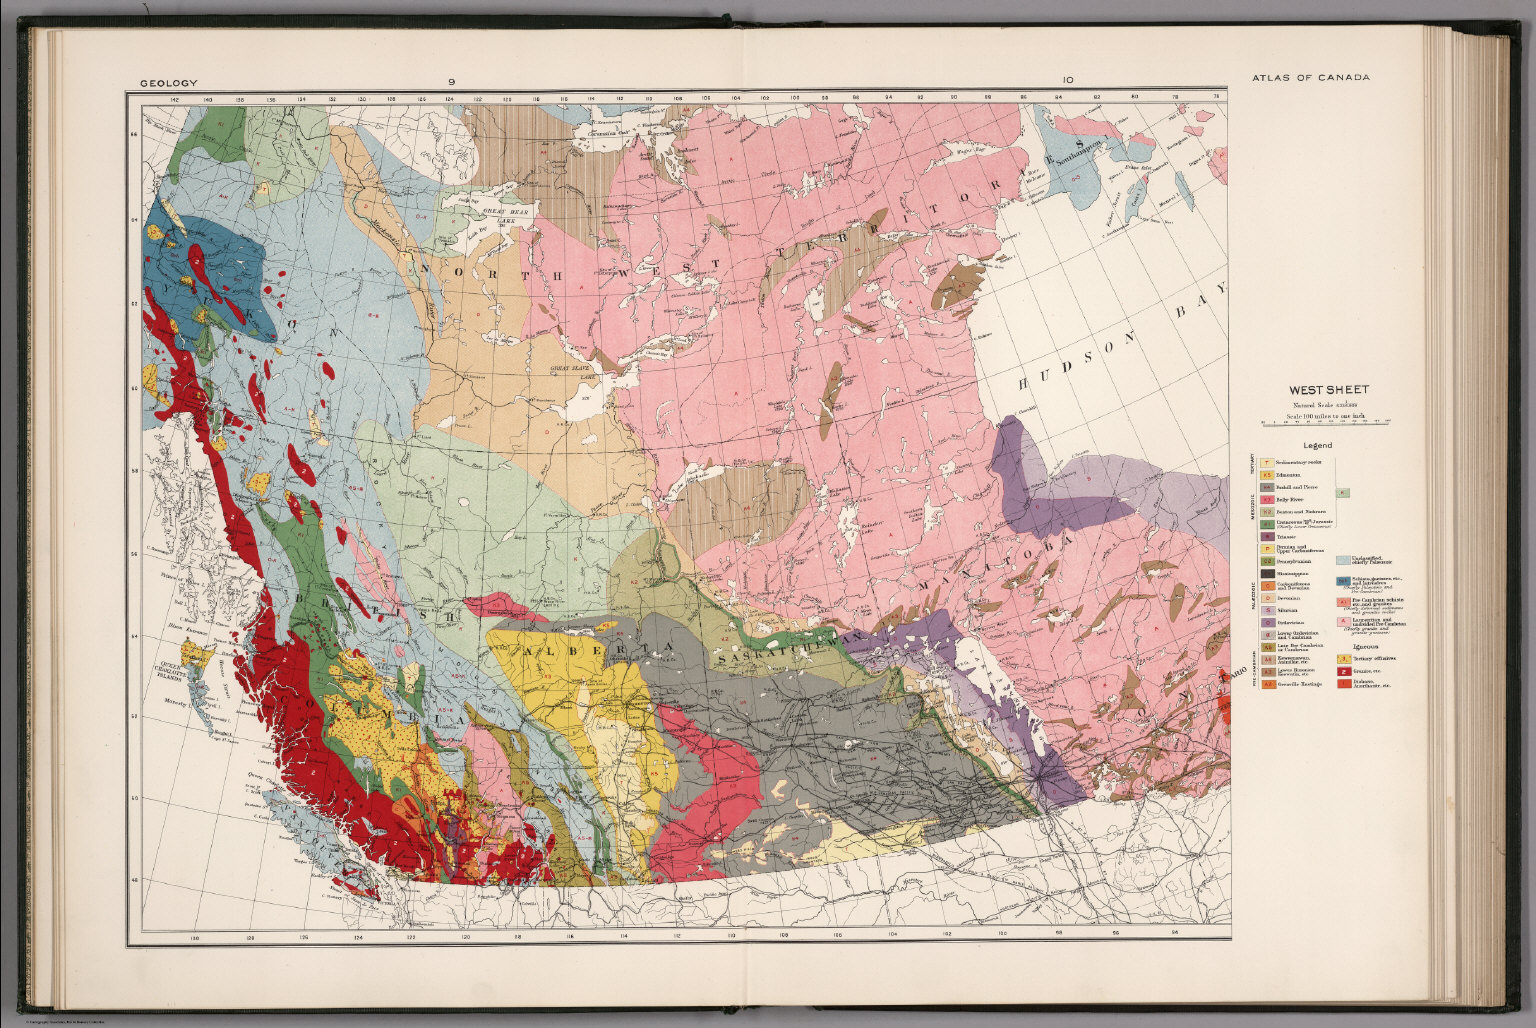 West sheet. Geological map of the Dominion of Canada - David Rumsey on